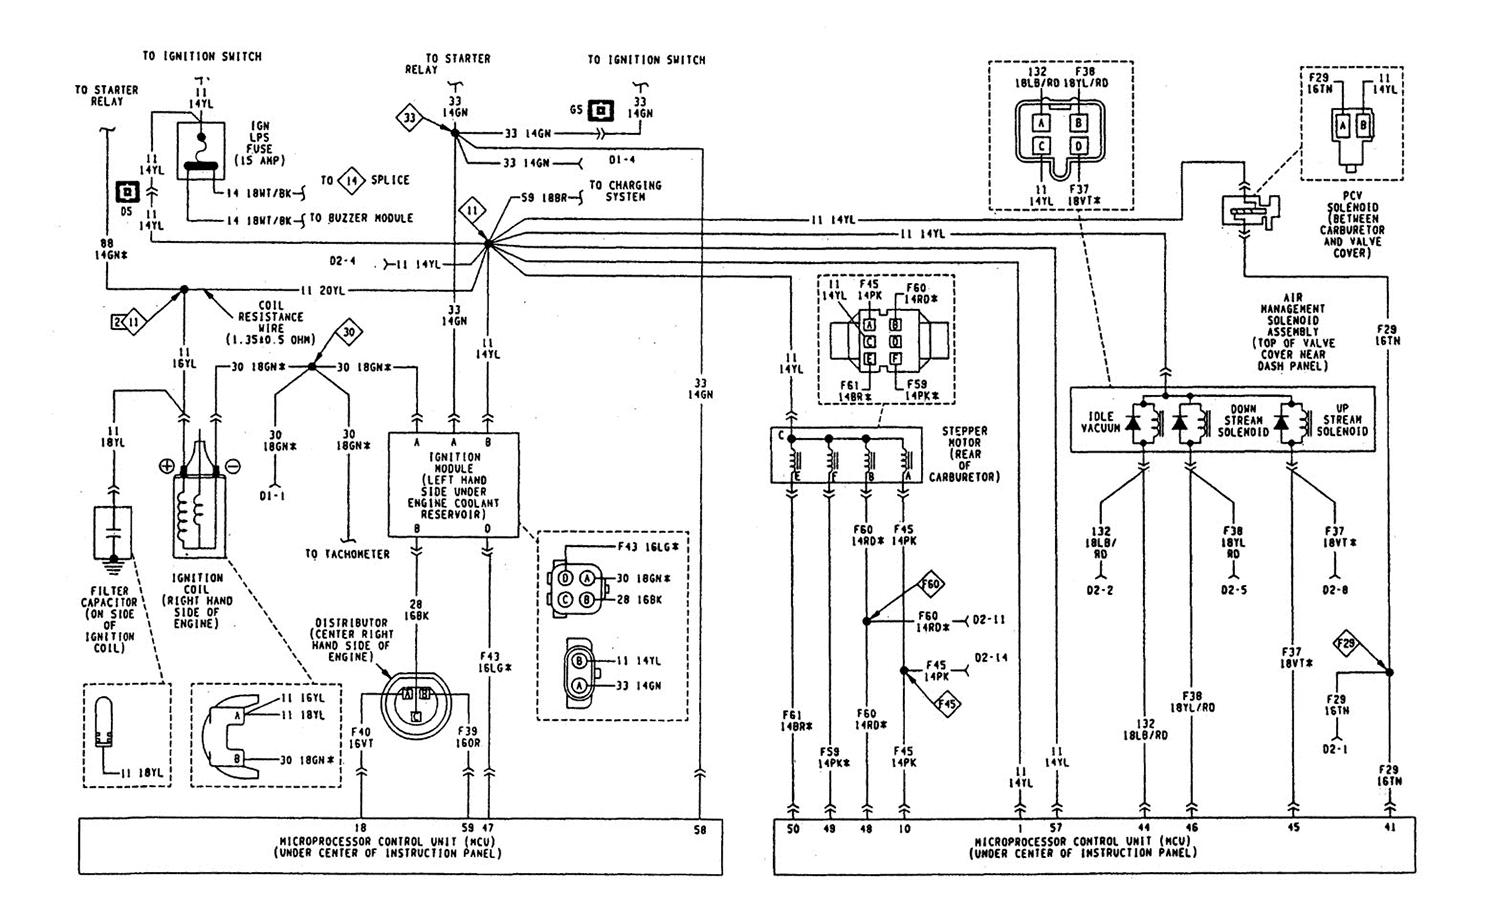 wiring diagram for 1990 jeep wrangler wiring diagram for 1990 jeep wrangler